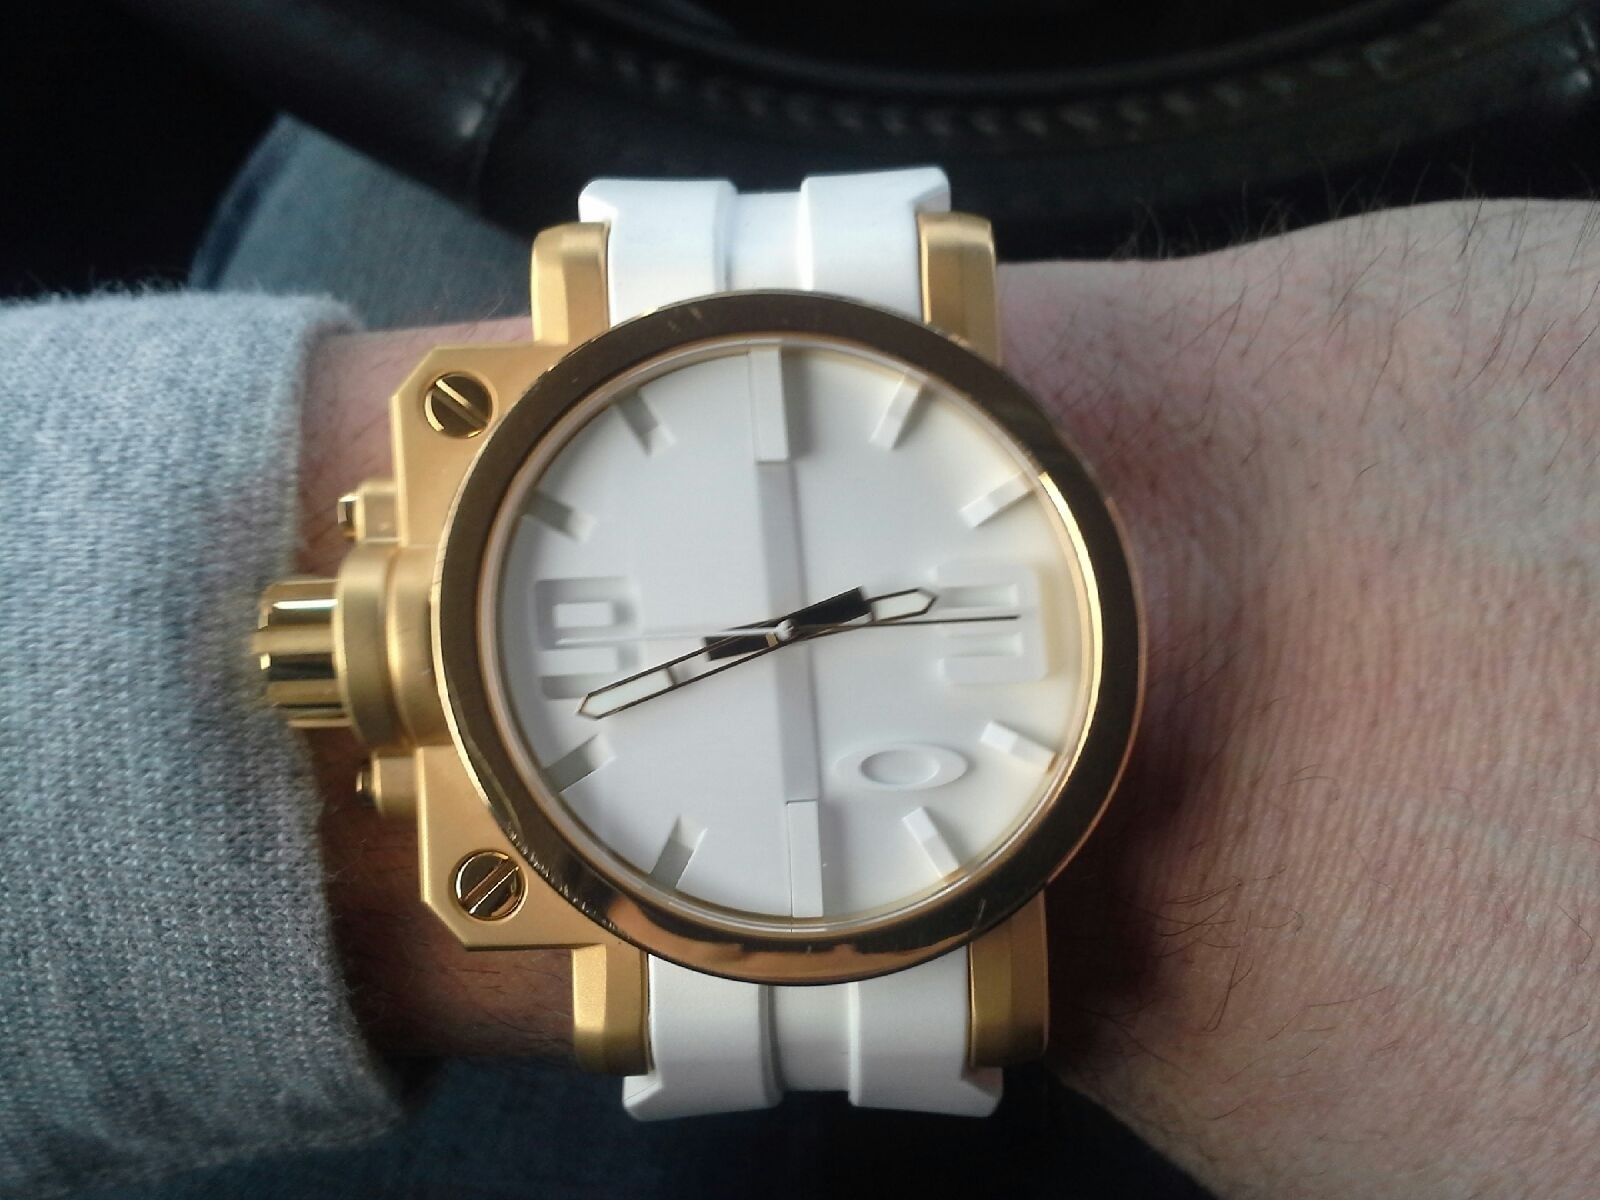 Gearbox white and gold - 20150102_144151.jpeg